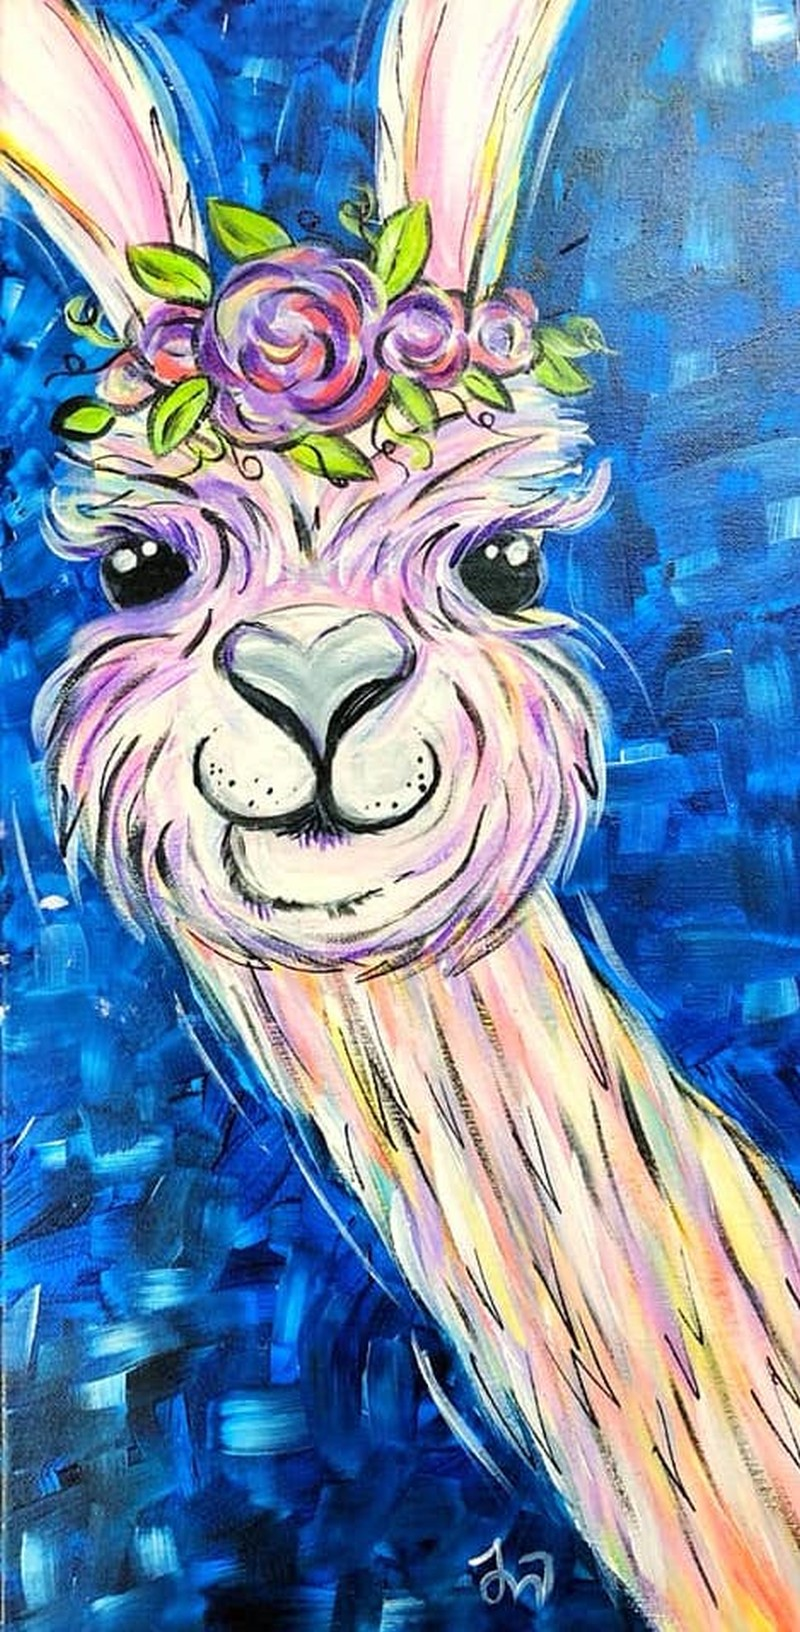 Lilac the Llama- TAKE HOME PAINT KIT - - ORDER TODAY! CURB SIDE PICK UP TOMORROW 2PM-5PM!